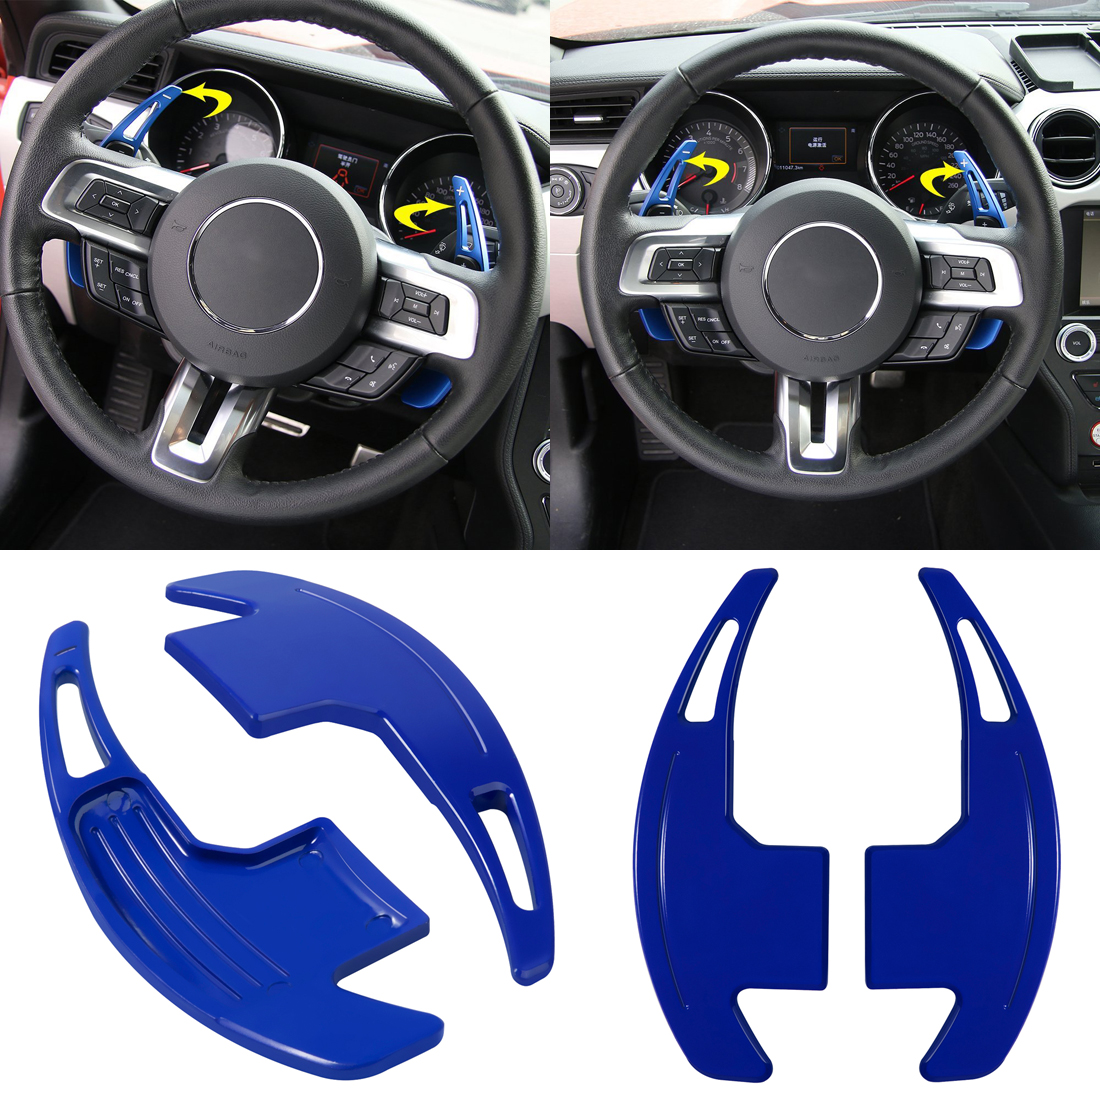 Blue Billet Aluminum Steering Shift Paddle Shifter Extension For Ford Mustang #y